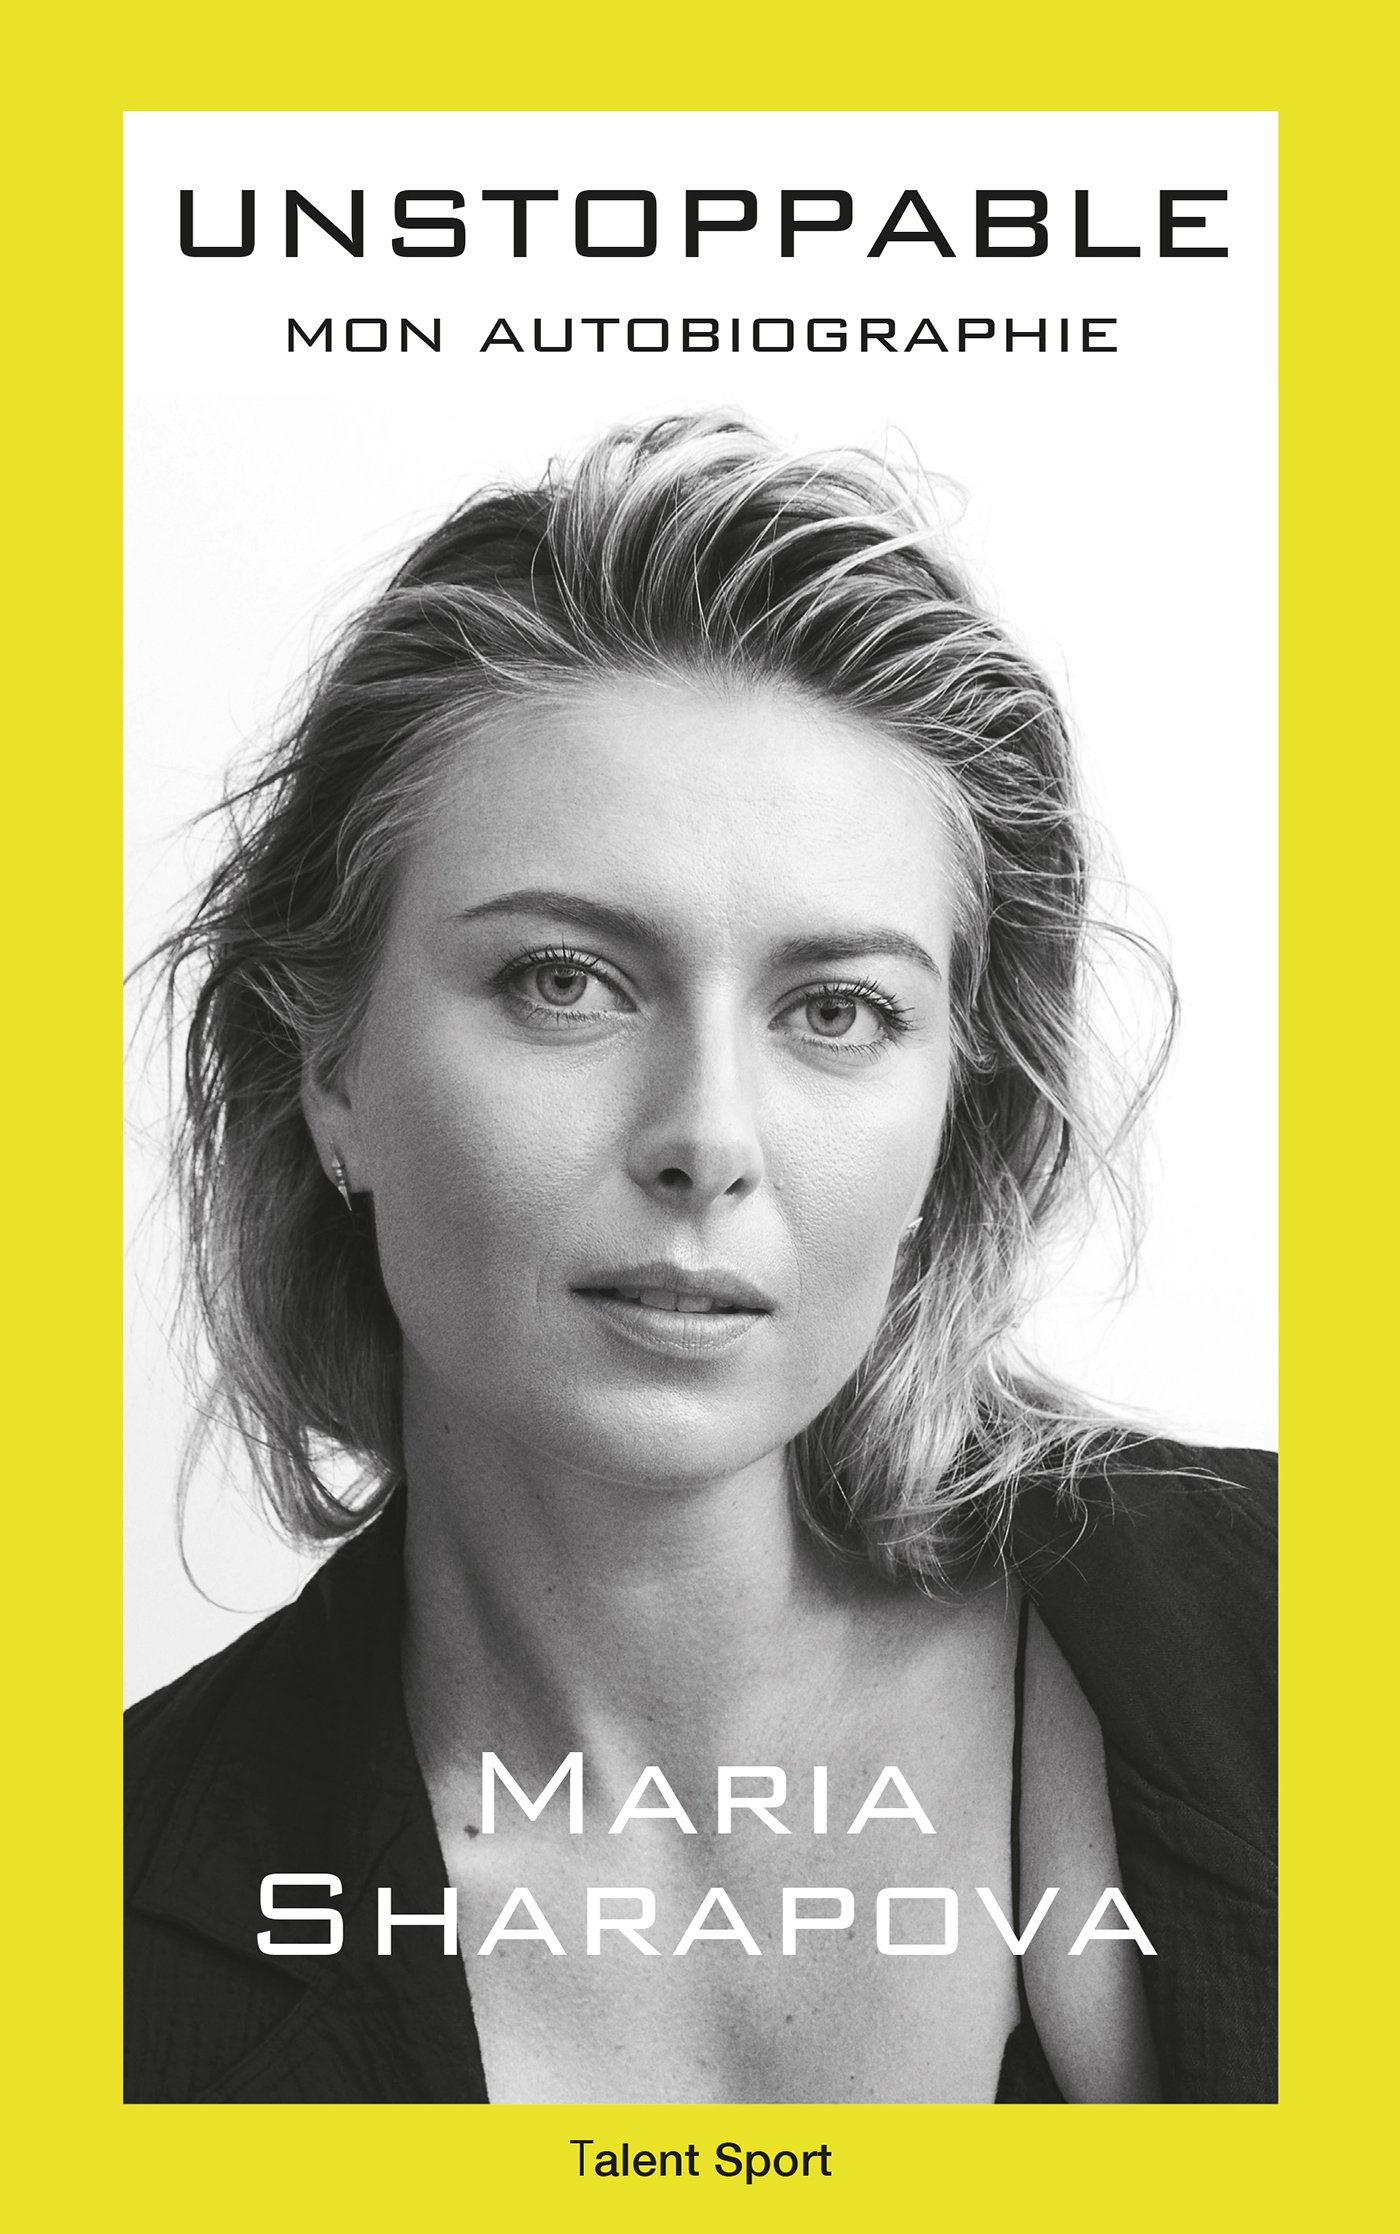 Maria Sharapova Unstoppable Mon Autobiographie Amazon Fr